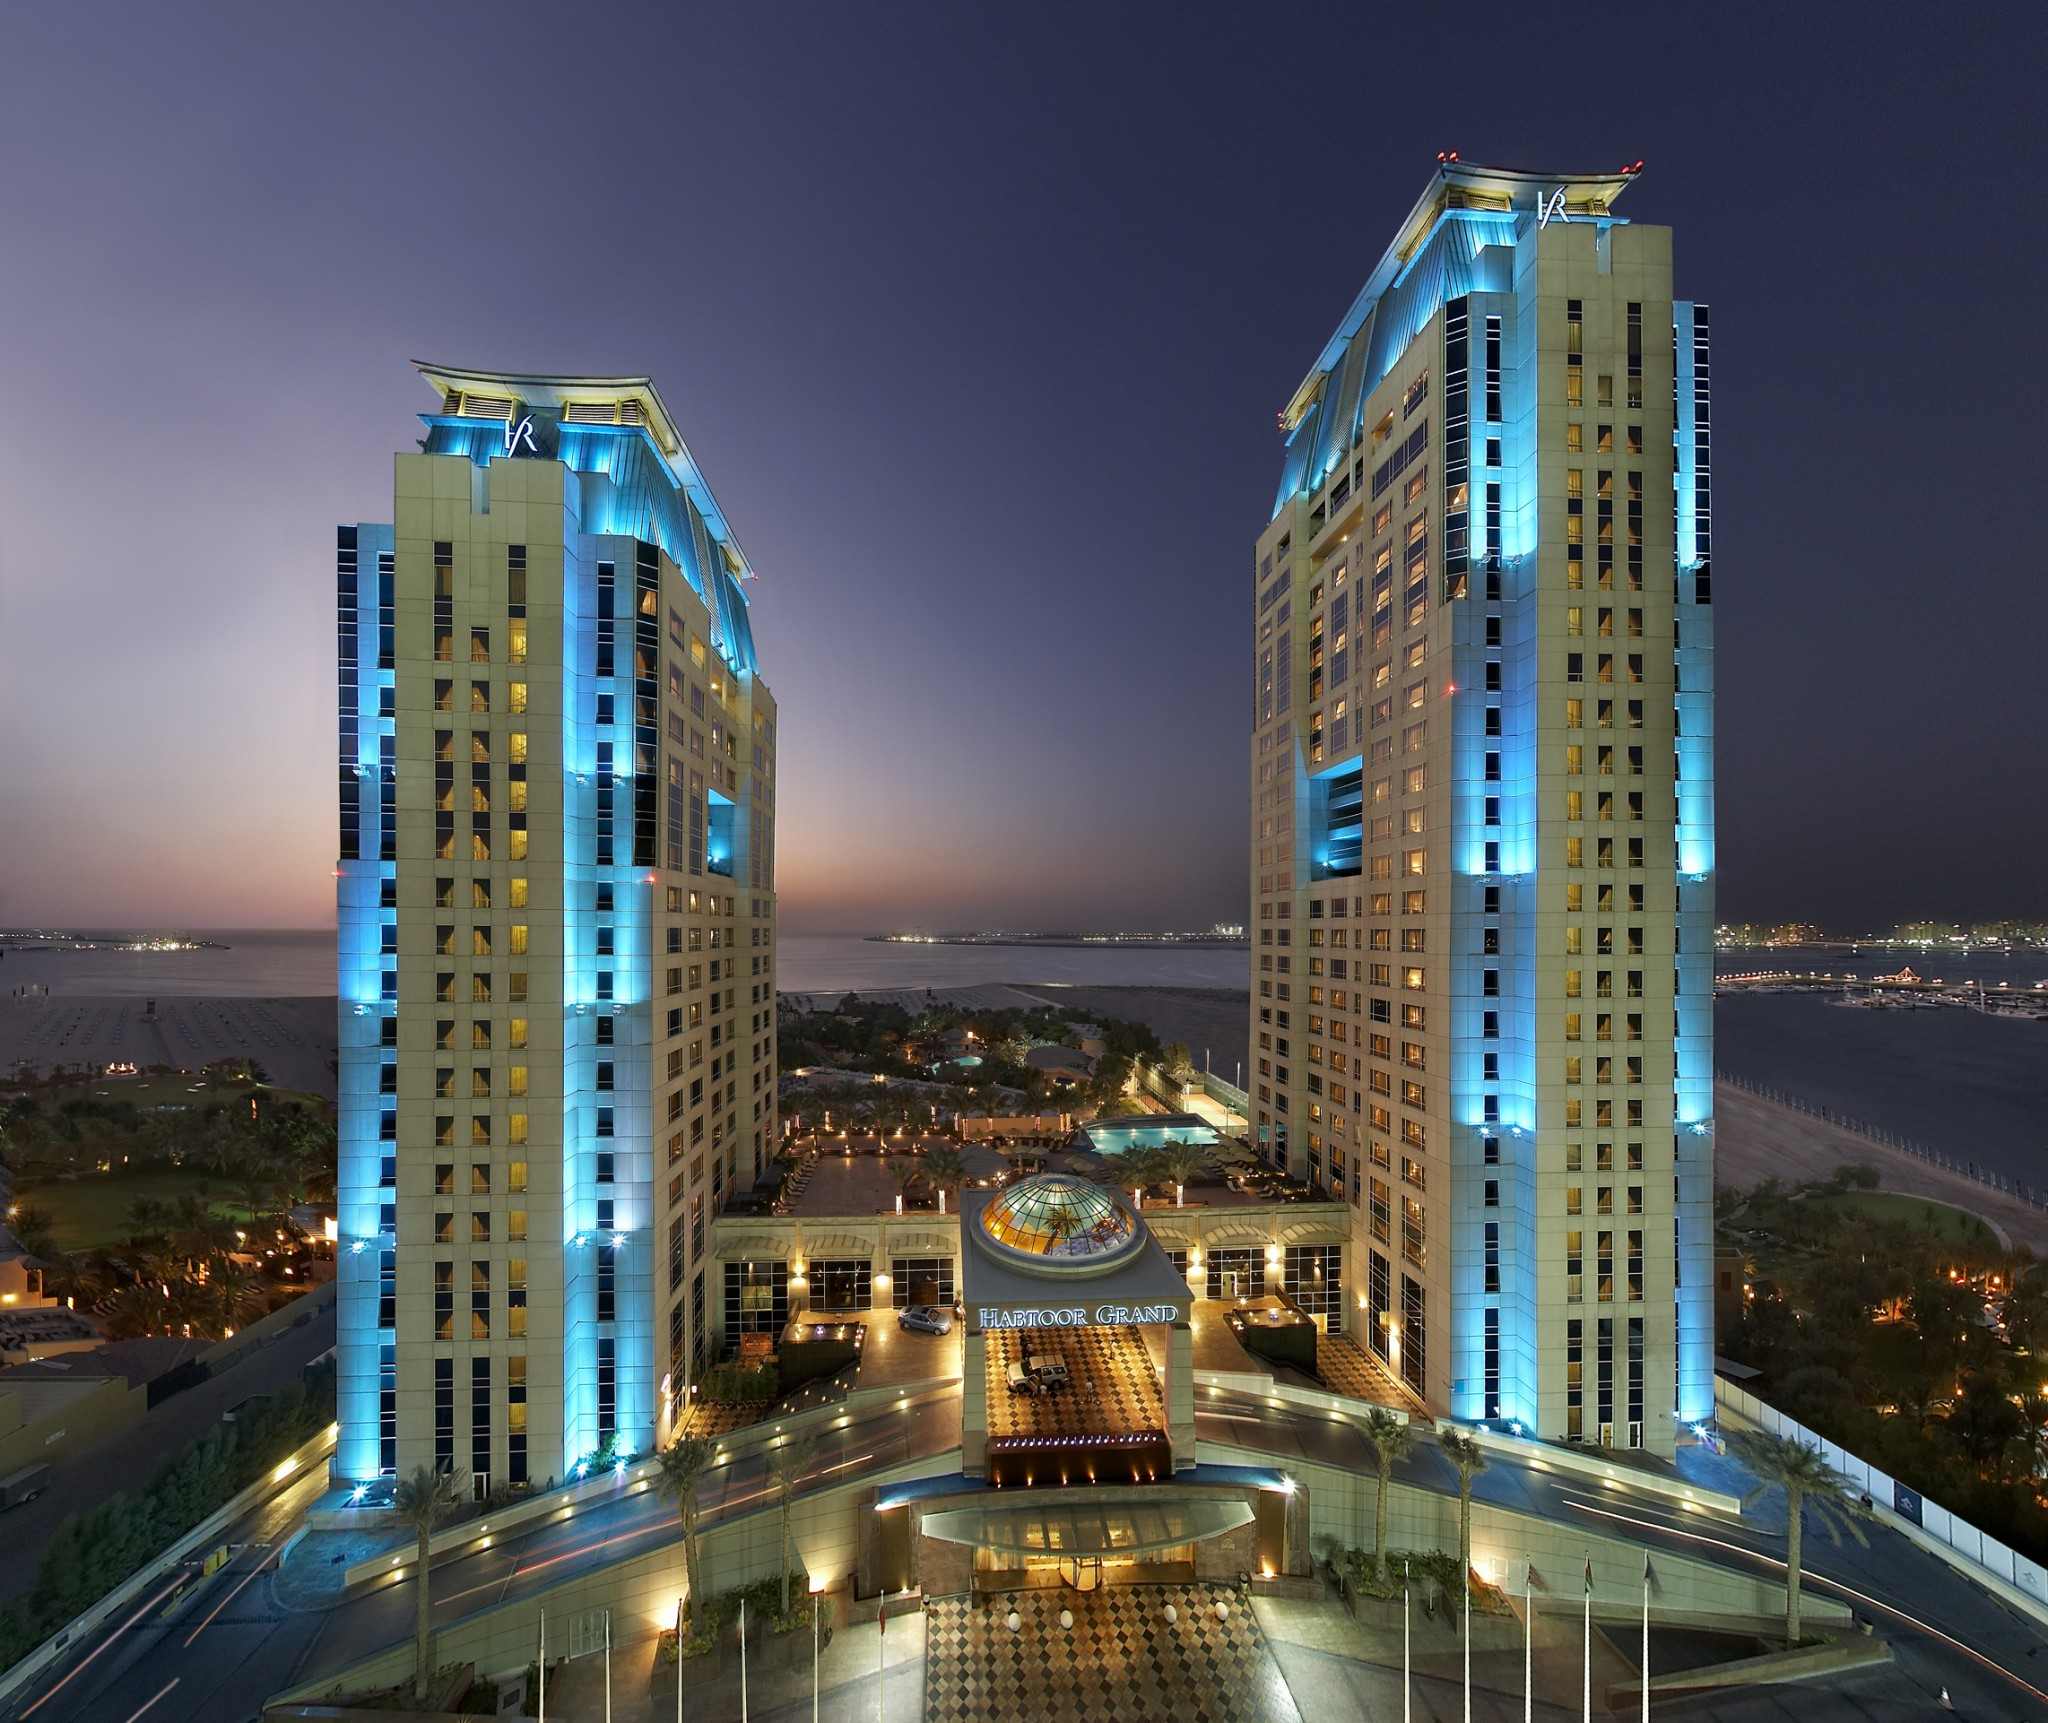 Habtoor grand luxury on a budget in dubai the lux for Hip hotel dubai